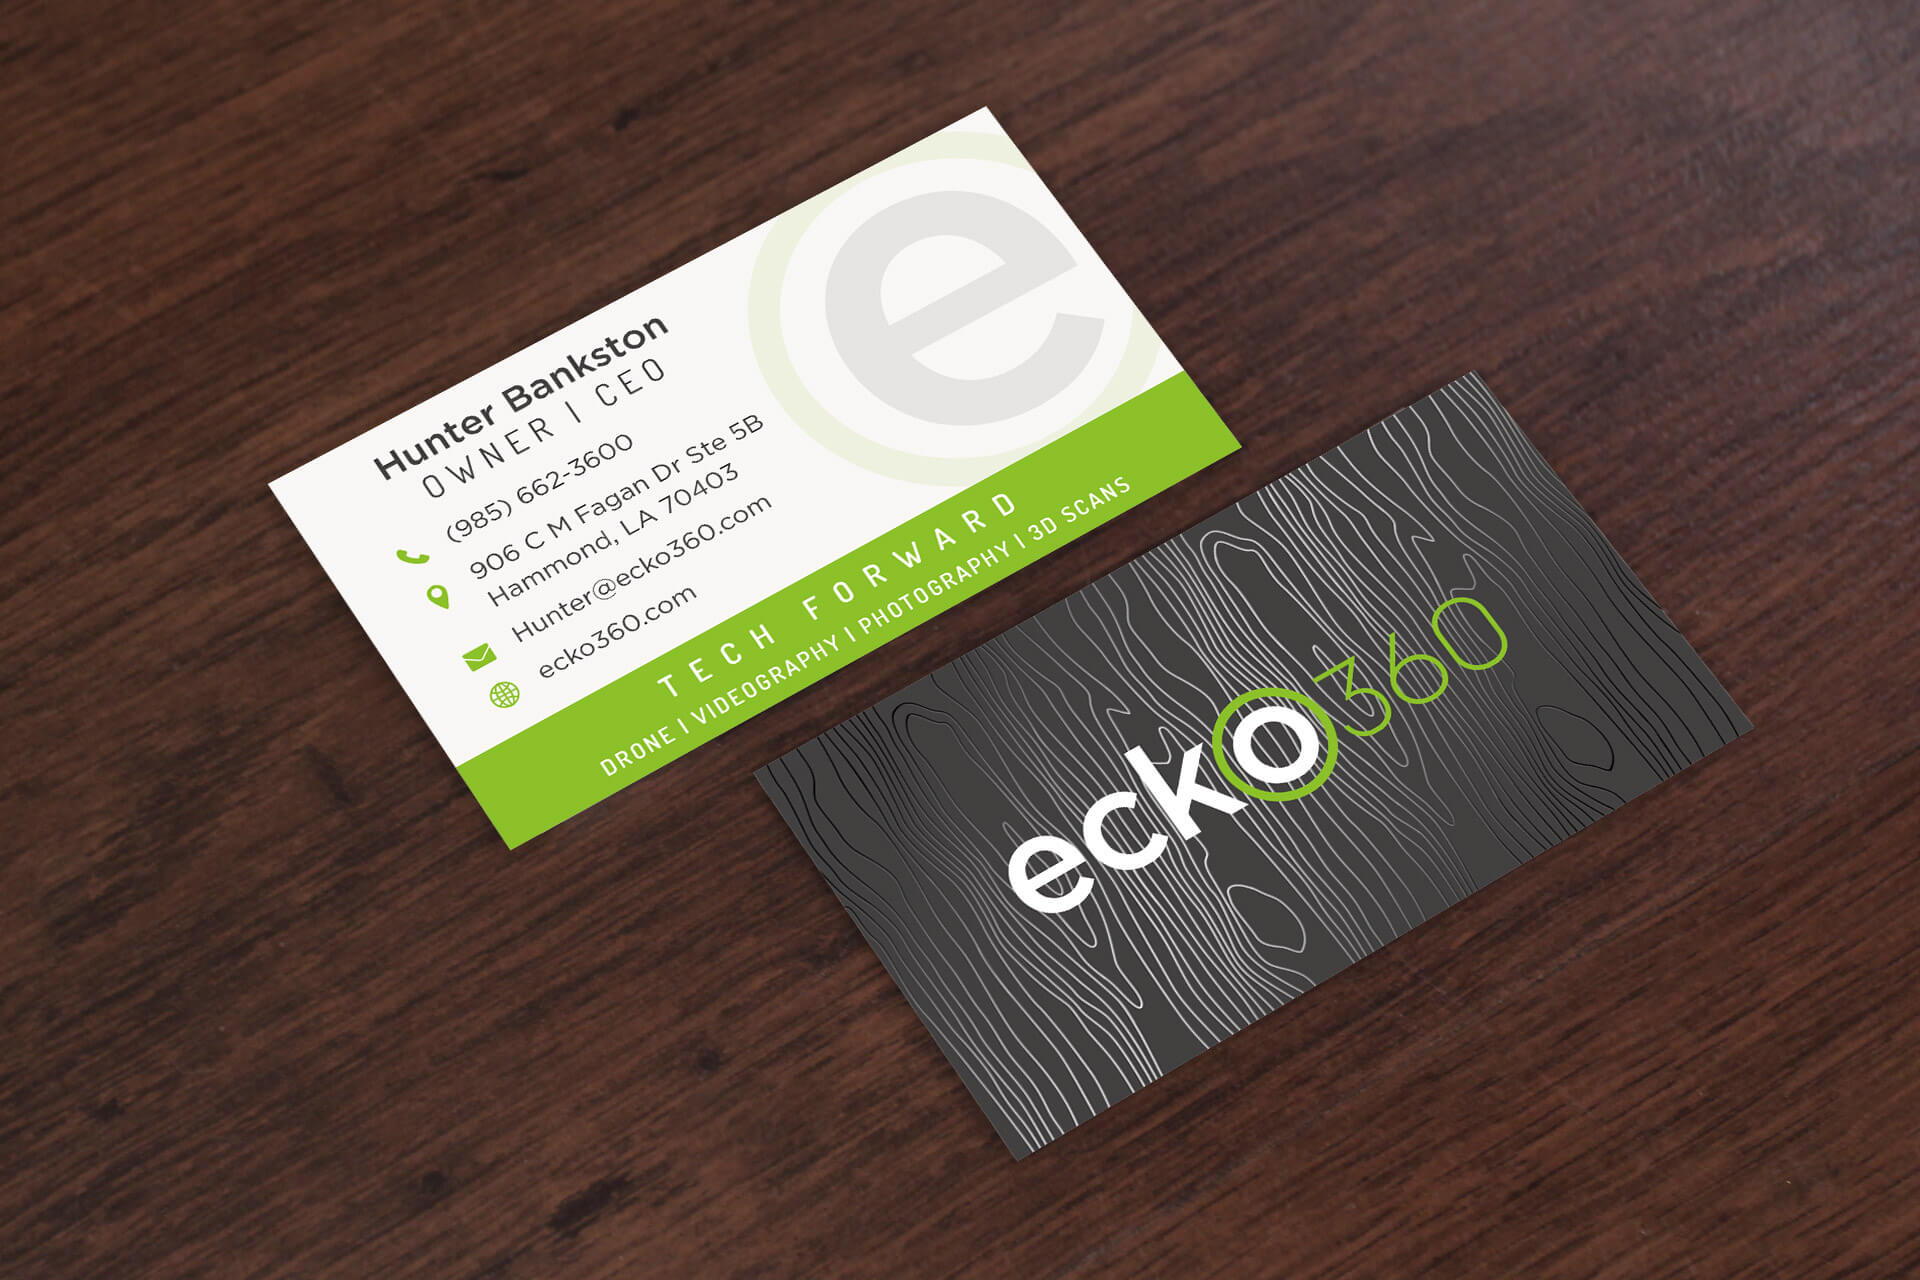 ecko360 Business Cards